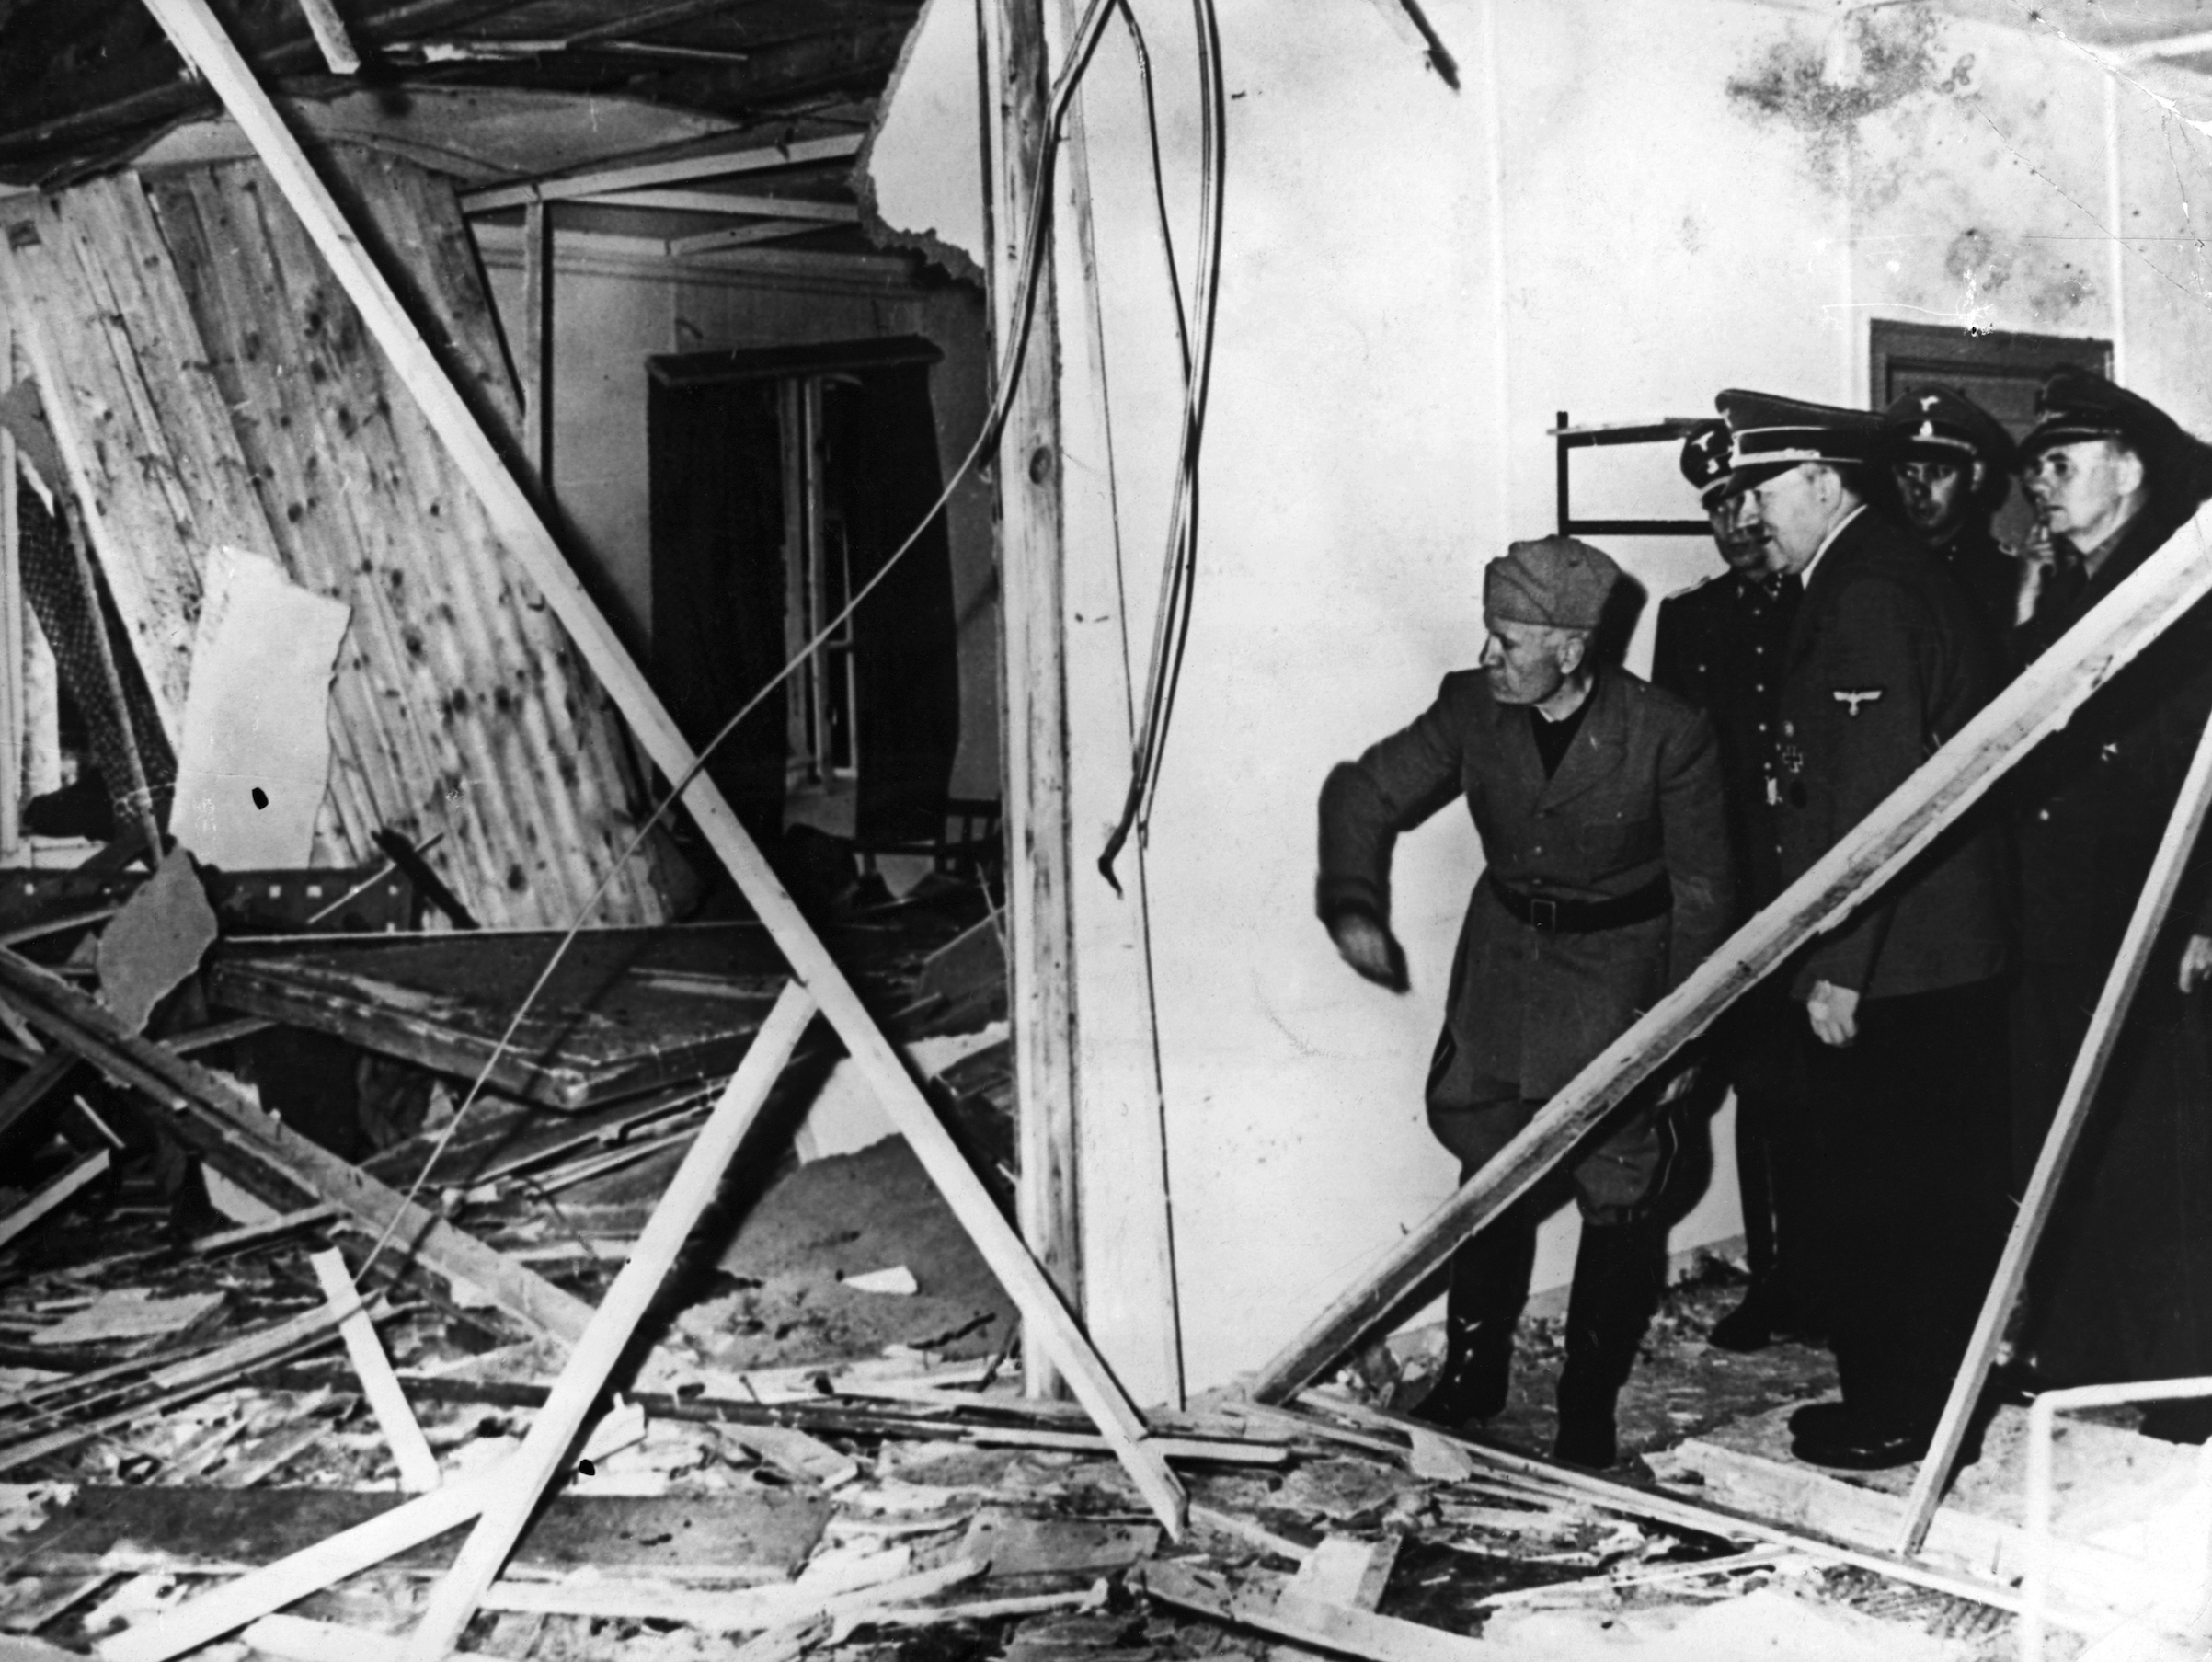 Adolf Hitler and Benito Mussolini visit Hitler's damaged headquarters in East Prussia after an attempt on Hitler's life there in July 1944. Colonel Claus von Stauffenberg and several other high-ranking Nazi staff members planned and carried out the attempt, and were executed for it.